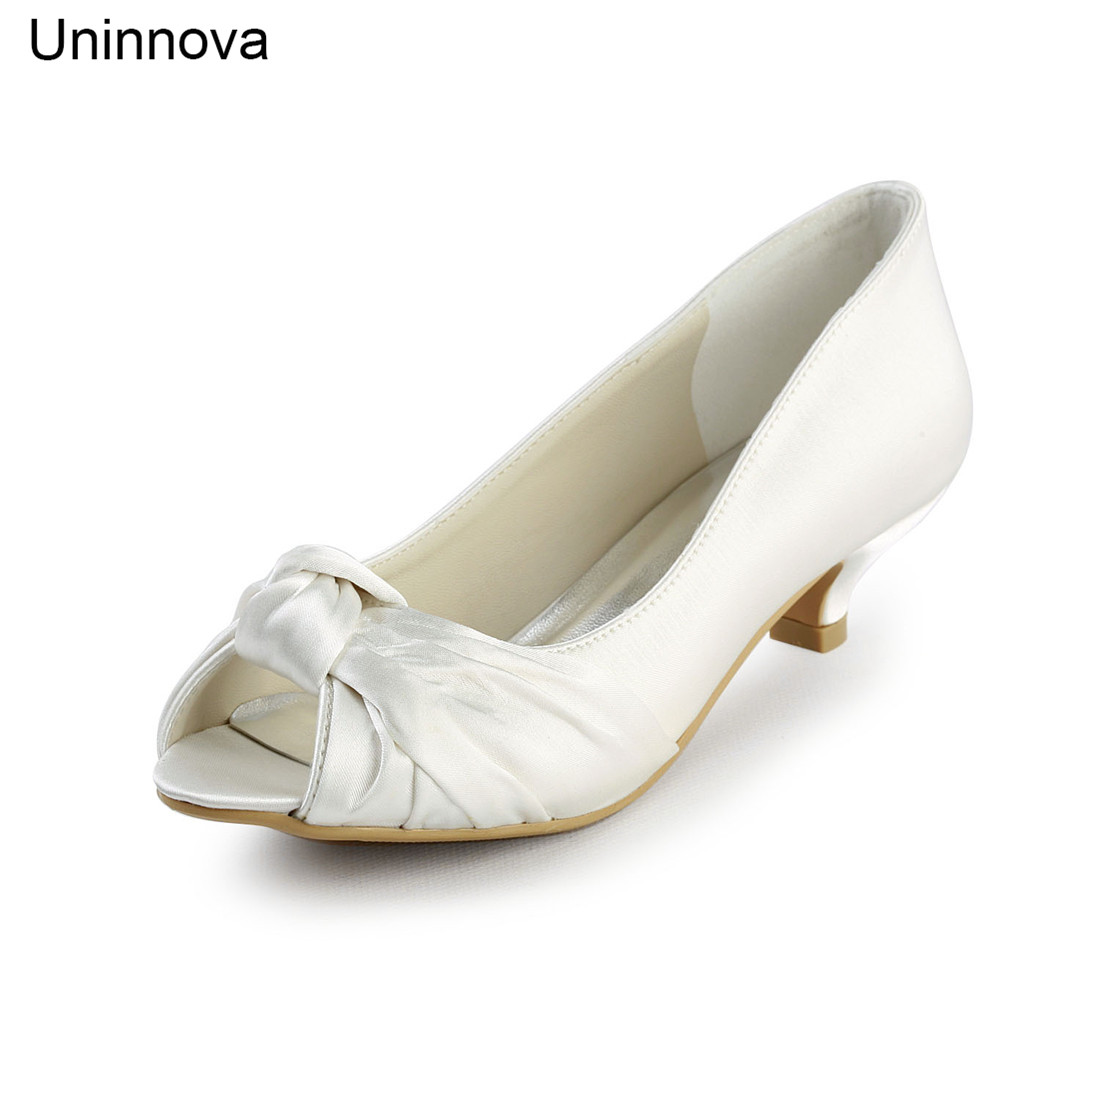 Bridal Bridesmaids Knot Med Wedding Heels Pumps Peep Toe Ivory Whit Champagne for Women Big Days Shoes 100 10 LY